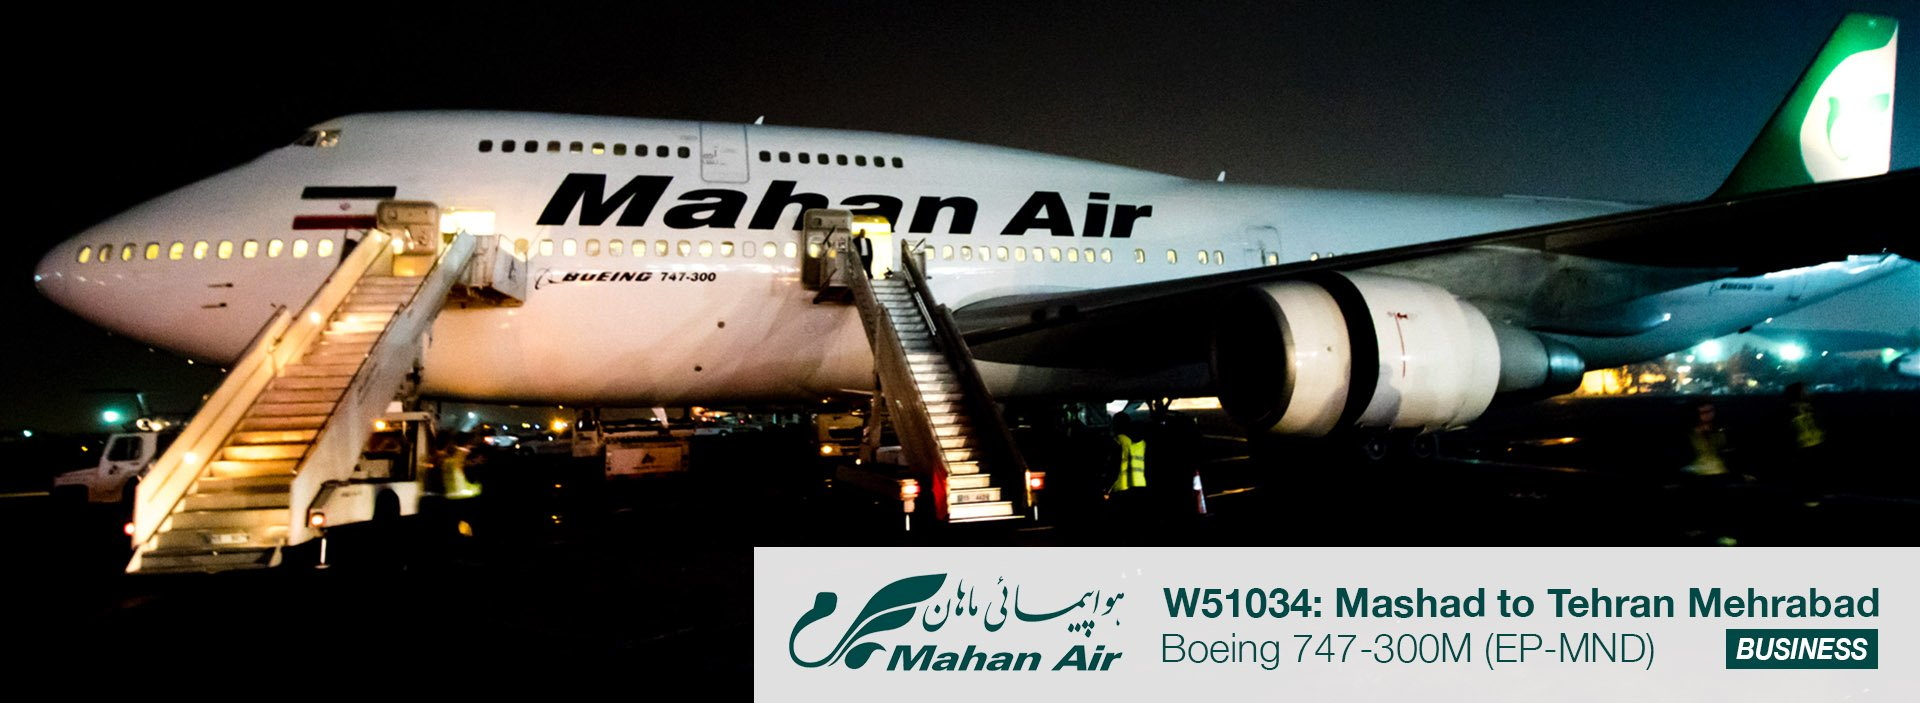 Flight Review: Mahan Air 747-300 Mashad to Tehran in Business Class